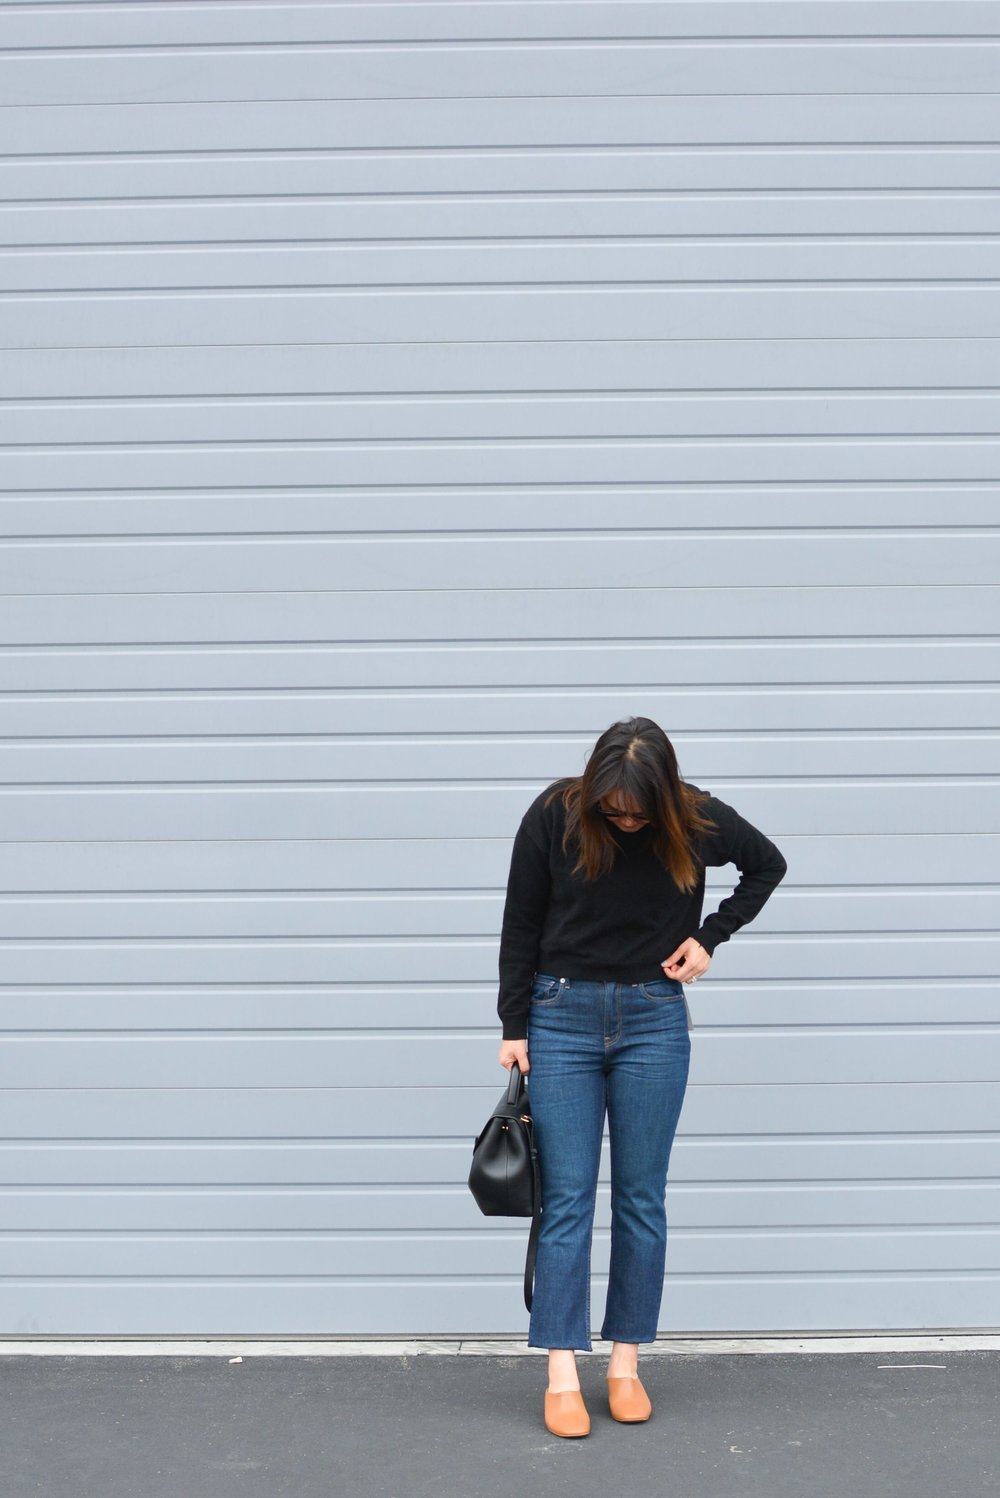 Everlane Review The Kick Crop Jeans (3 of 3)-min.jpg